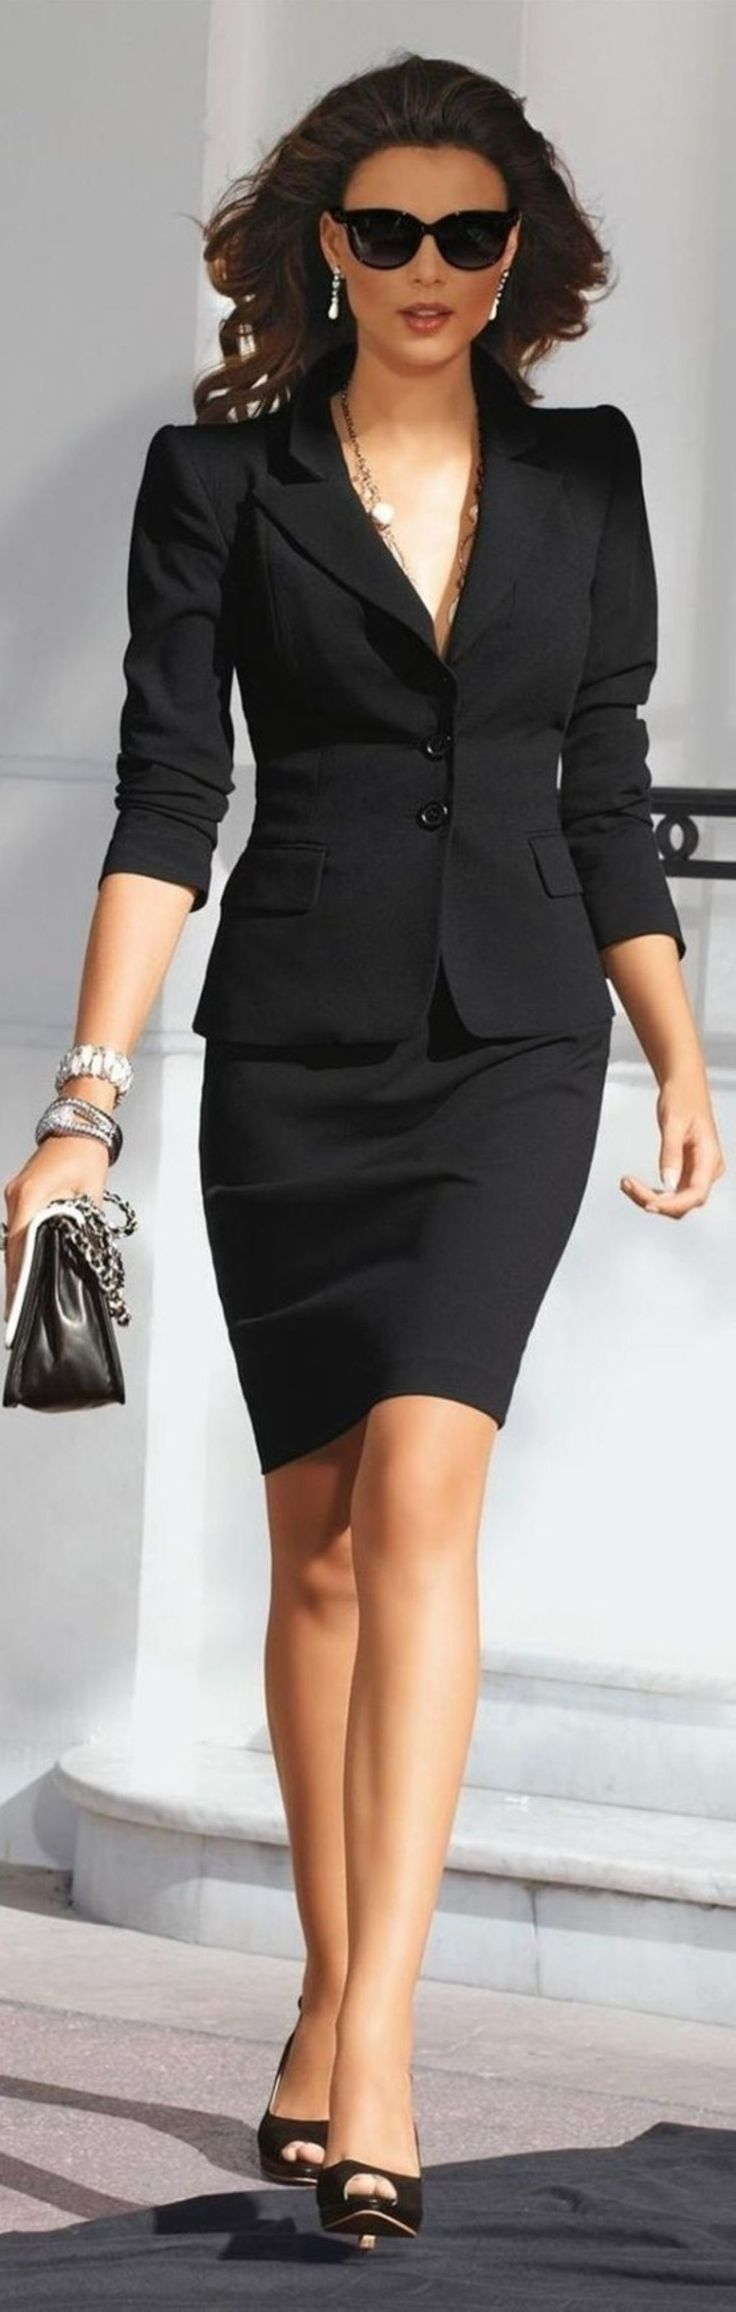 Stunning 41 Stylish Professional Interview Outfits for Women http://inspinre.com/2018/02/26/41-stylish-professional-interview-outfits-women/